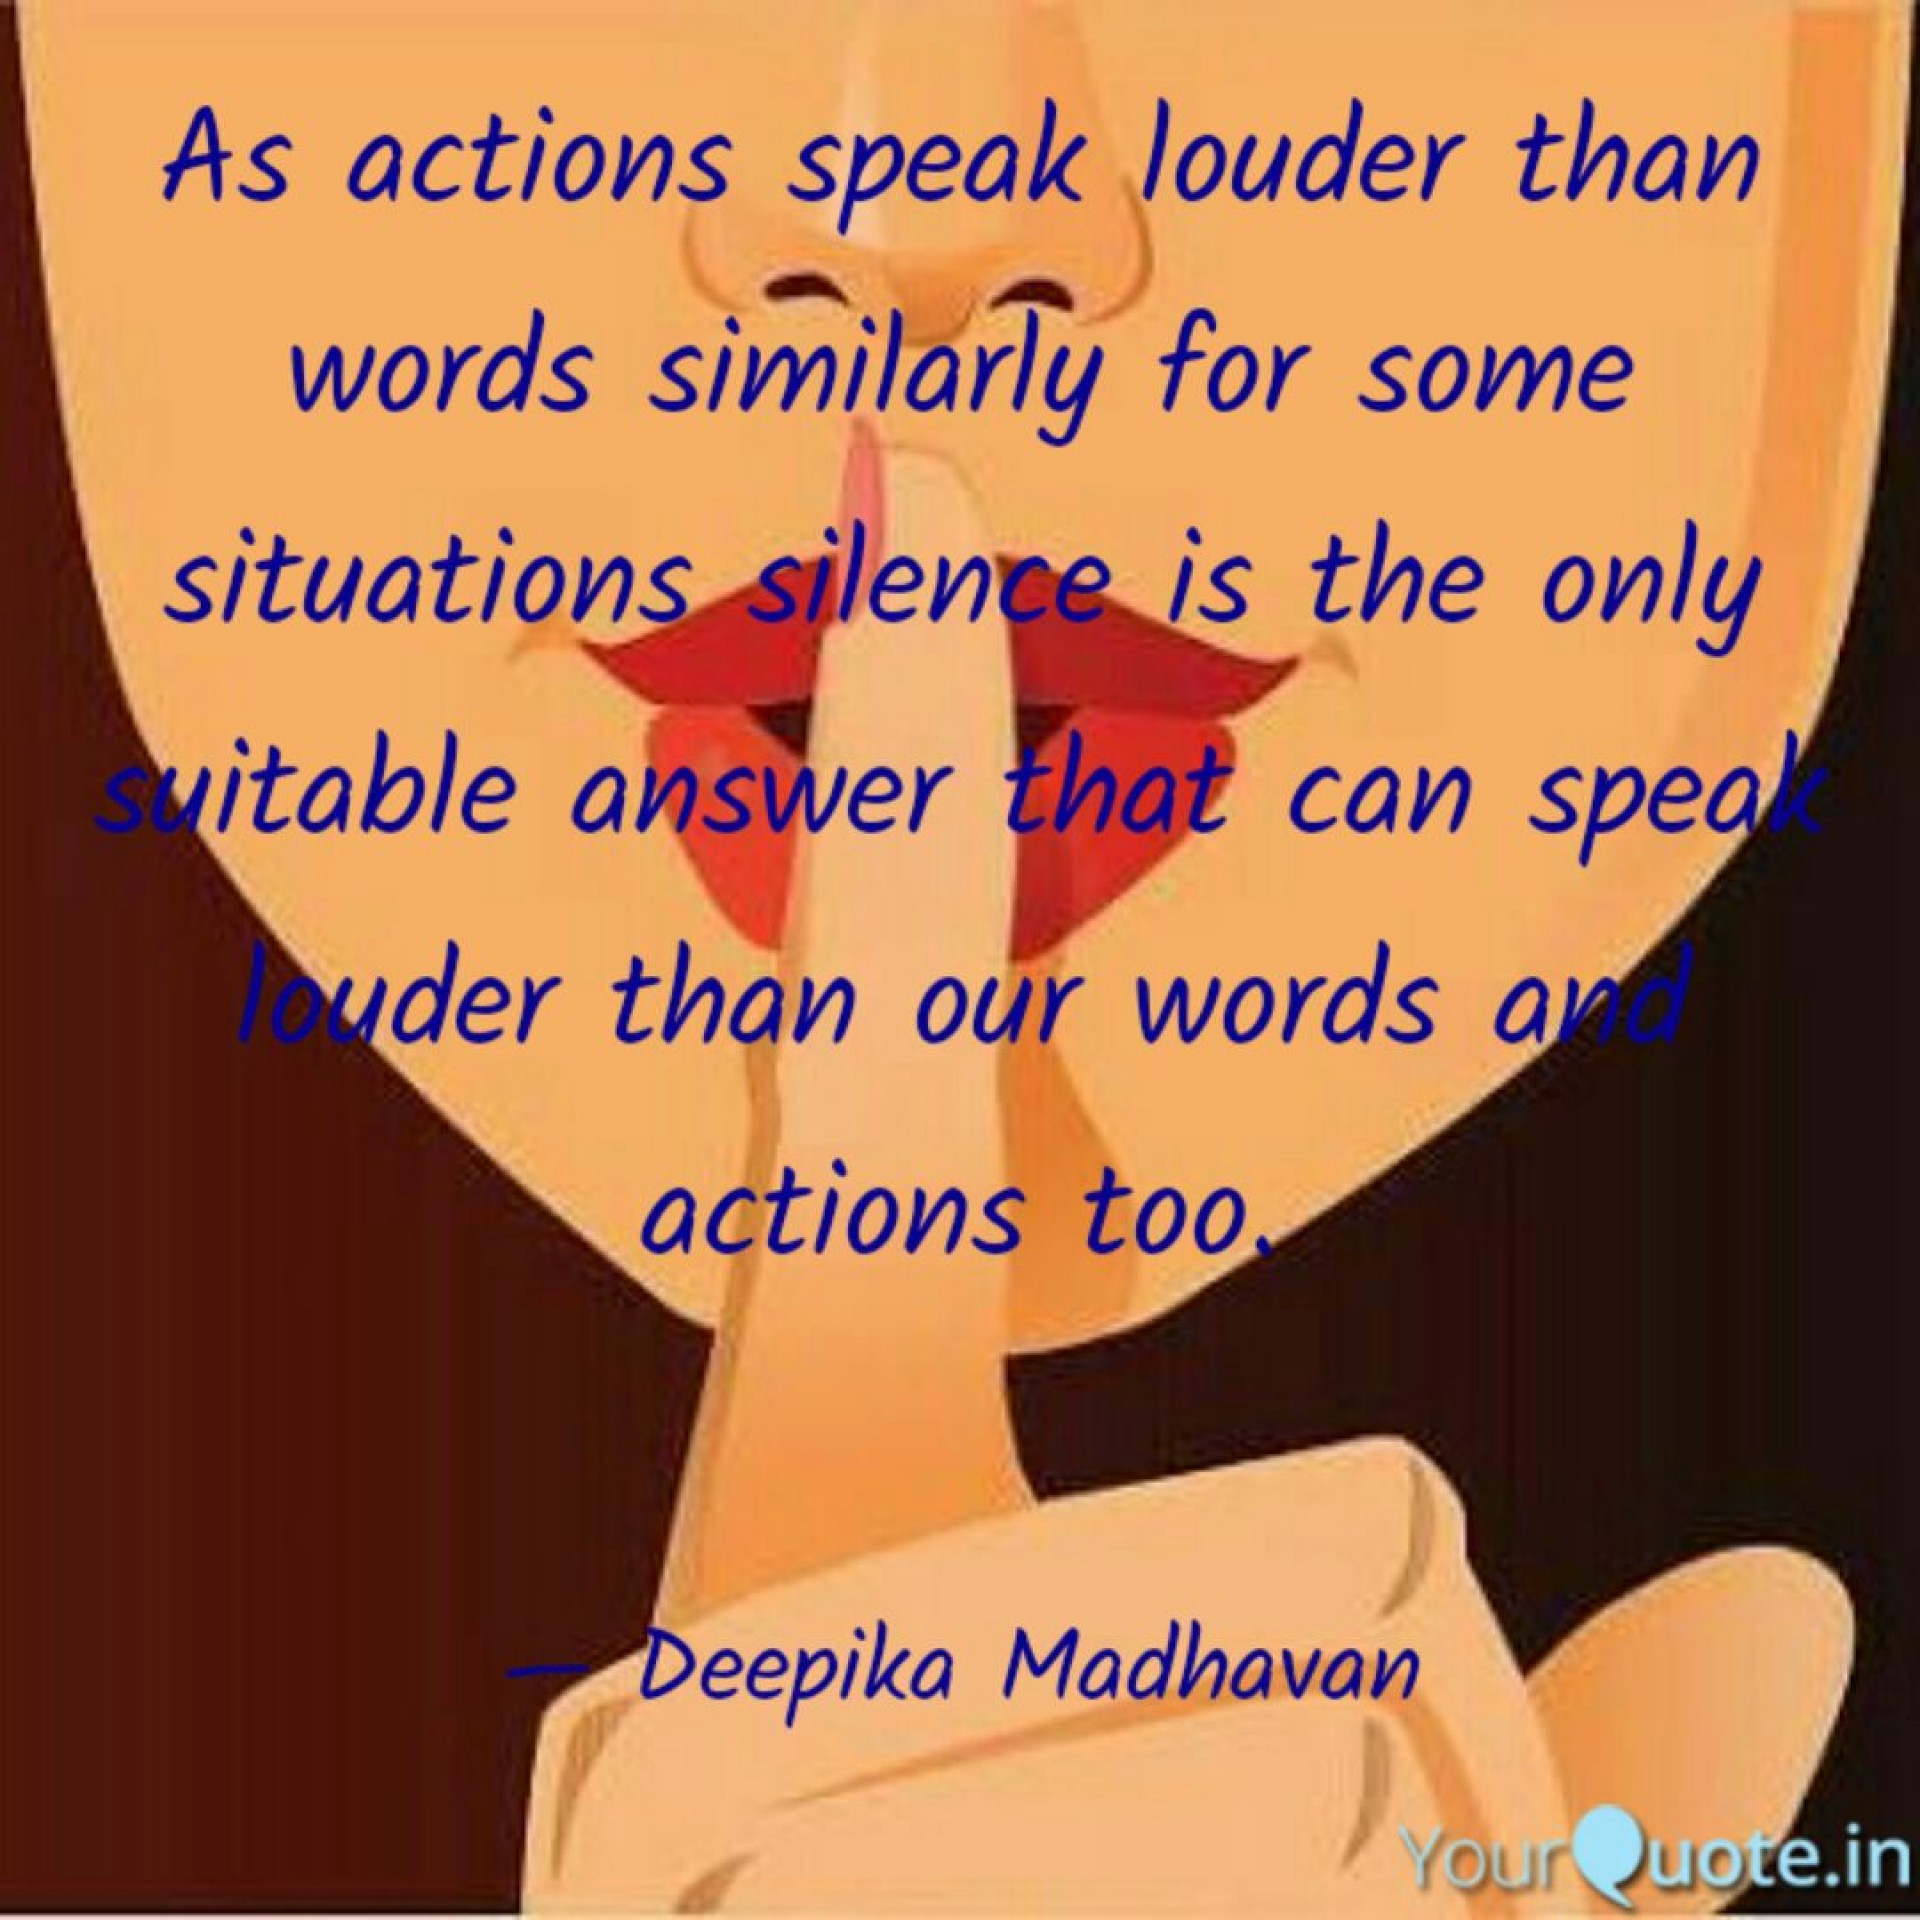 002 Silence Speaks Louder Than Words Quote As Actions Speak Quotedeepika Madhavan Yourquote Action Essay Surprising Outline In Hindi Spm 1920